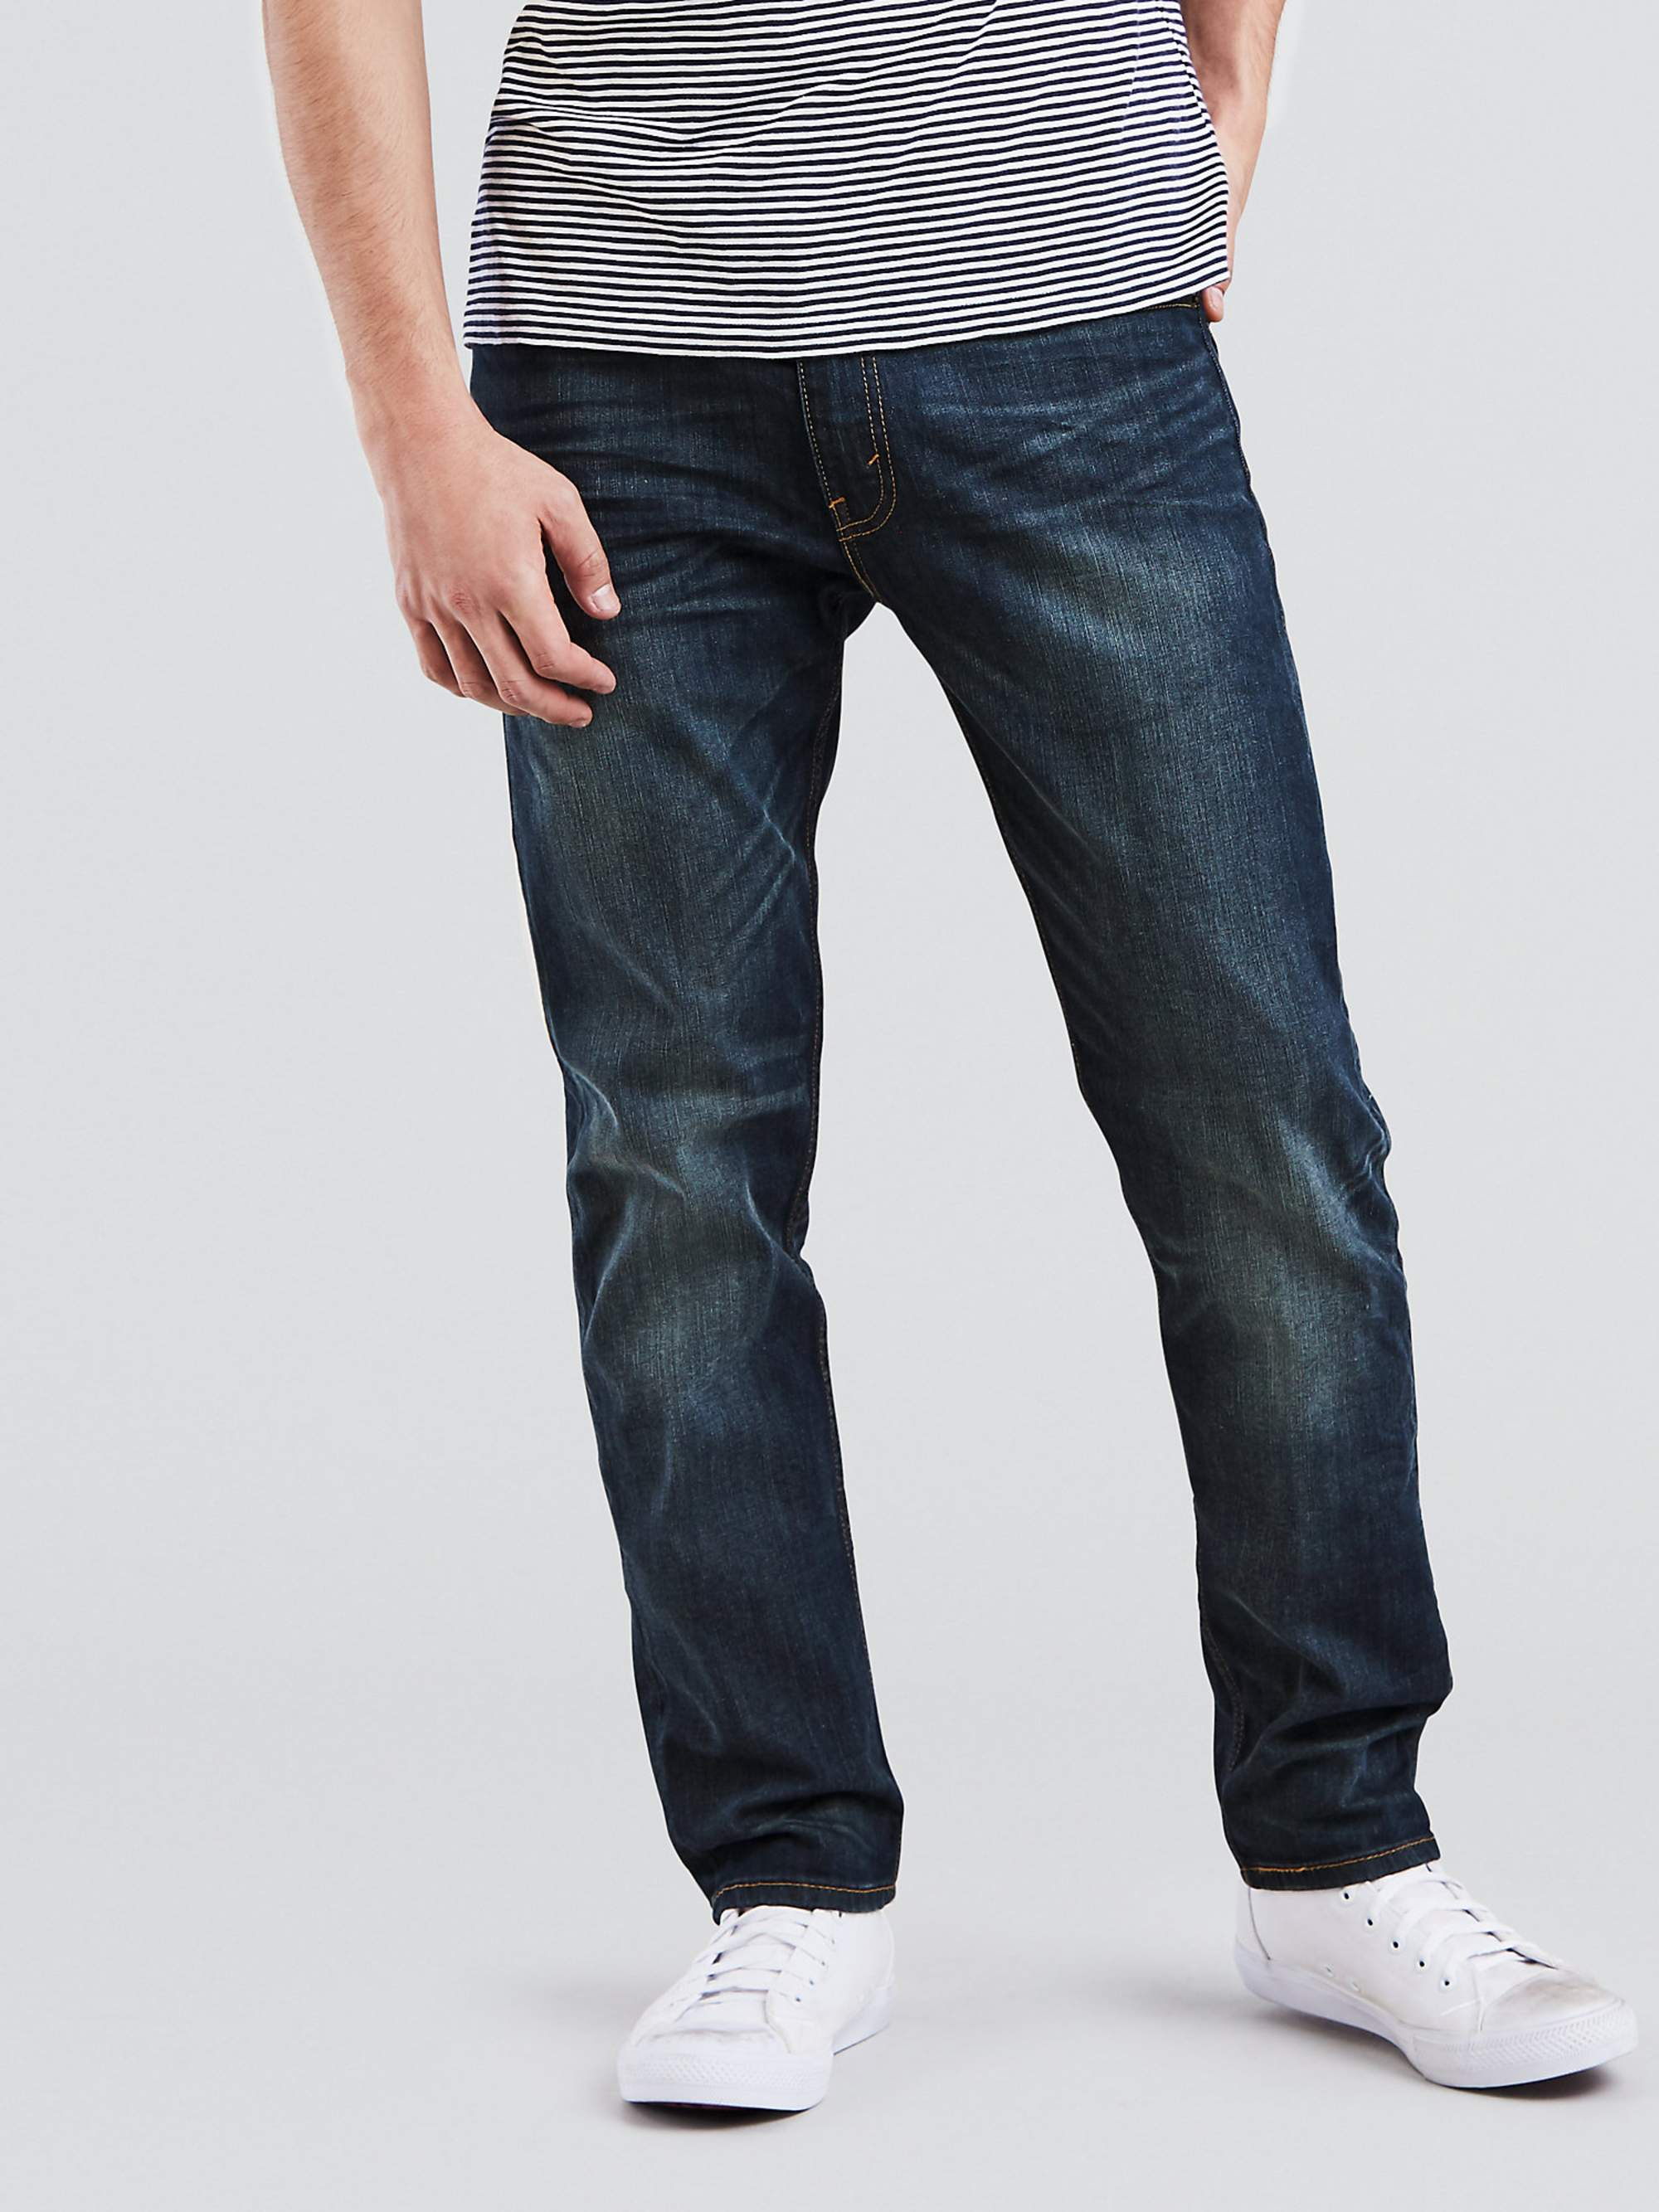 Levi's Men's 502 Regular Tapered Jeans (Rosefinch or Davie Ivy)